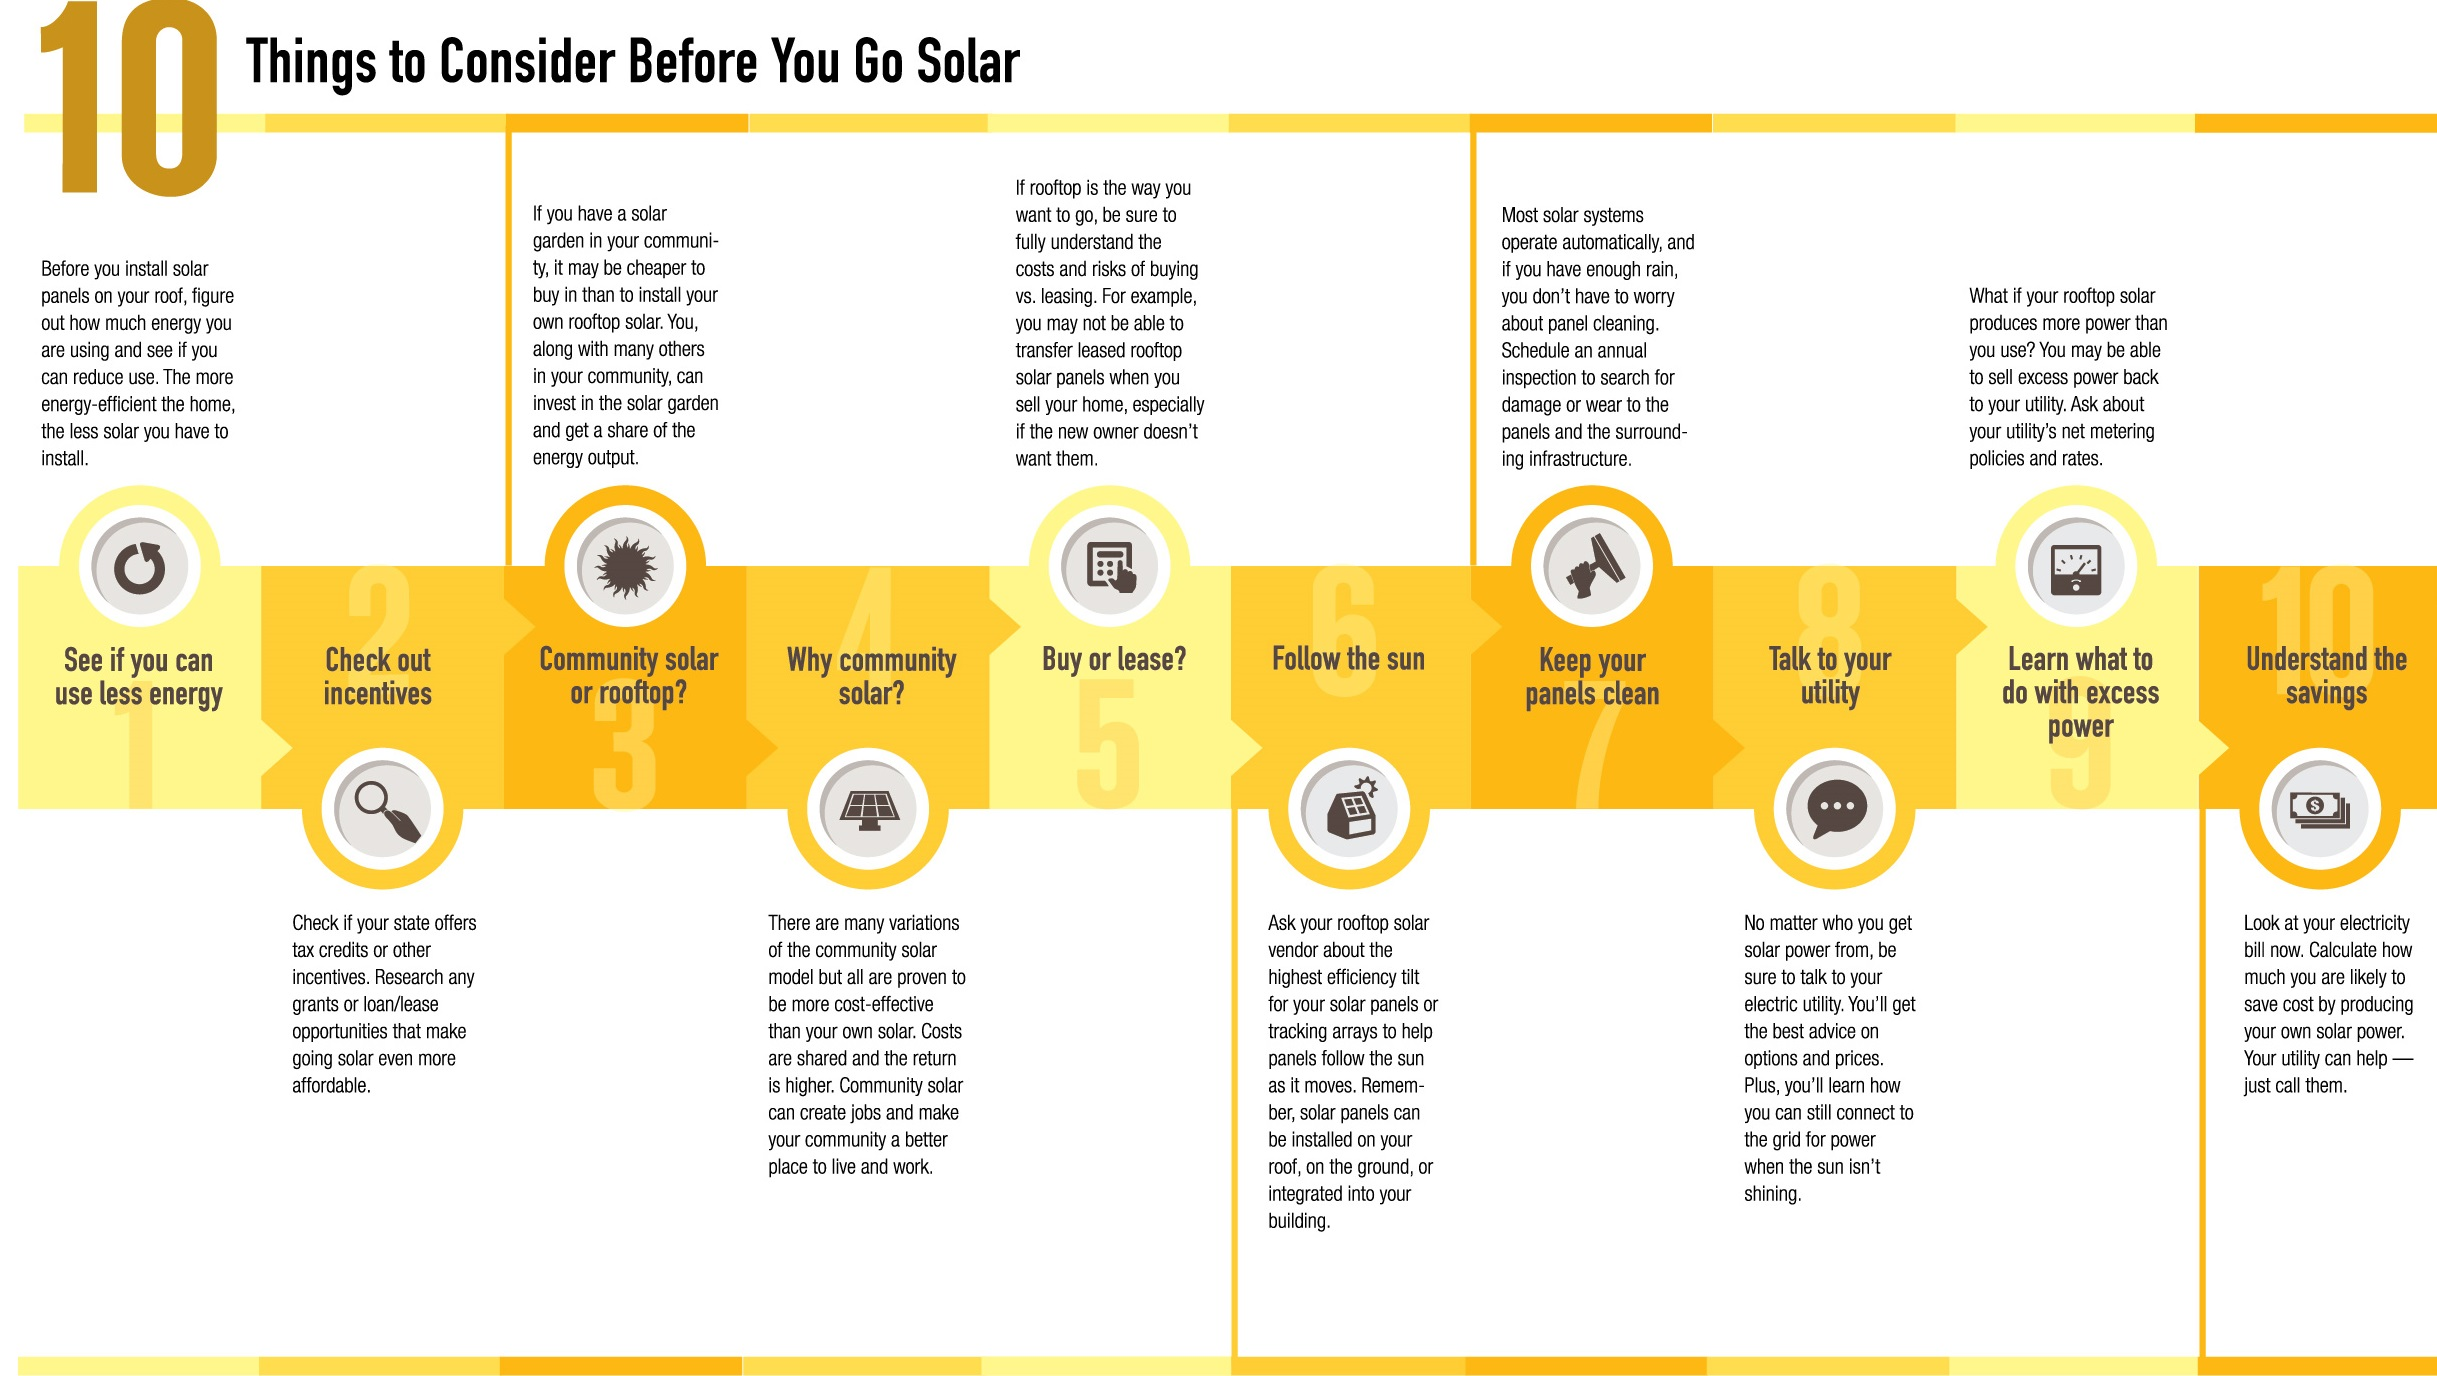 10 considerations before going solar infographic